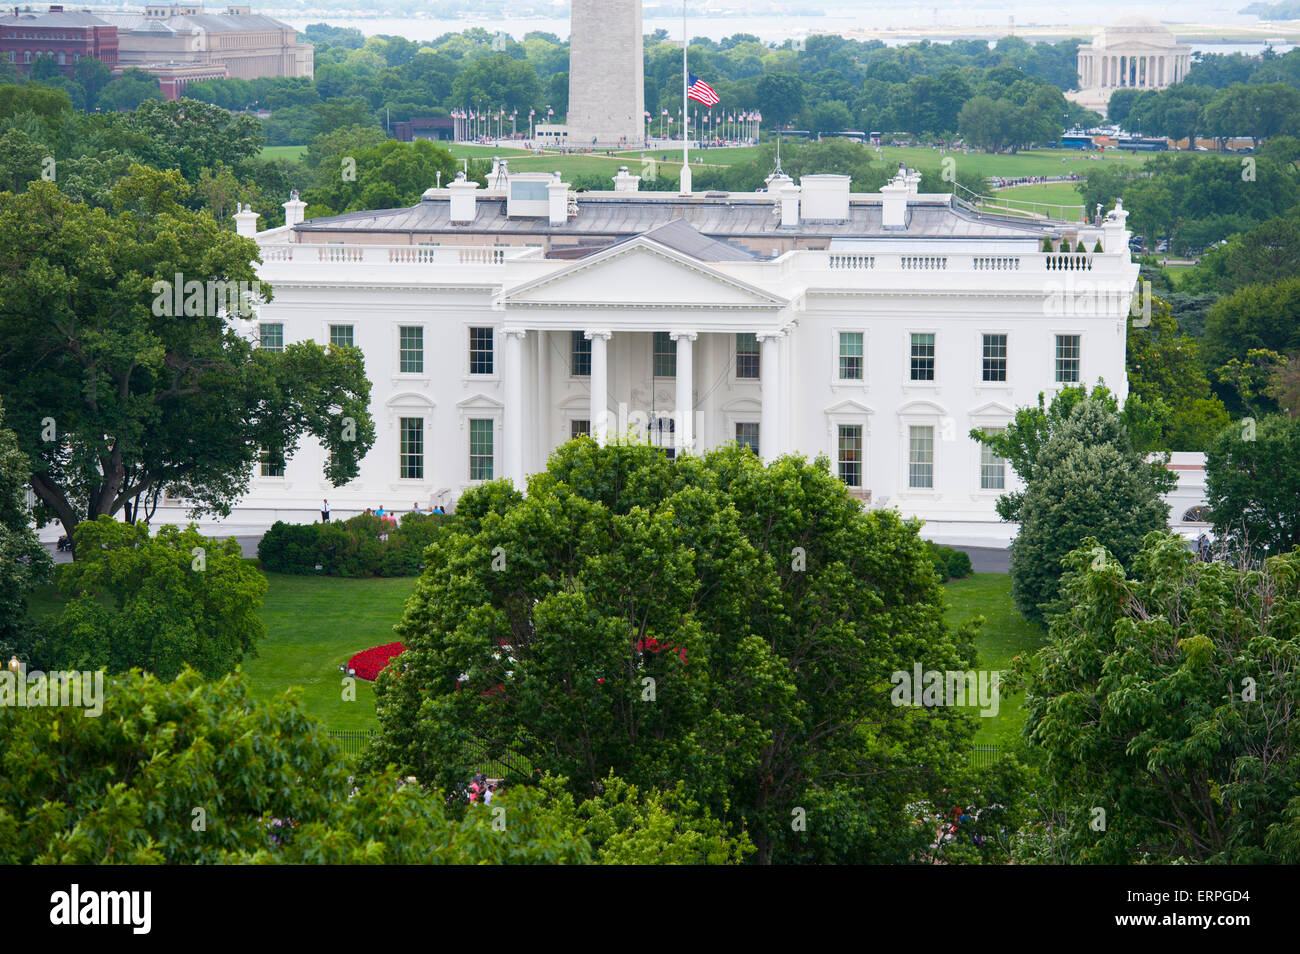 usa-washington-dc-the-white-house-home-of-the-american-president-aerial-ERPGD4.jpg